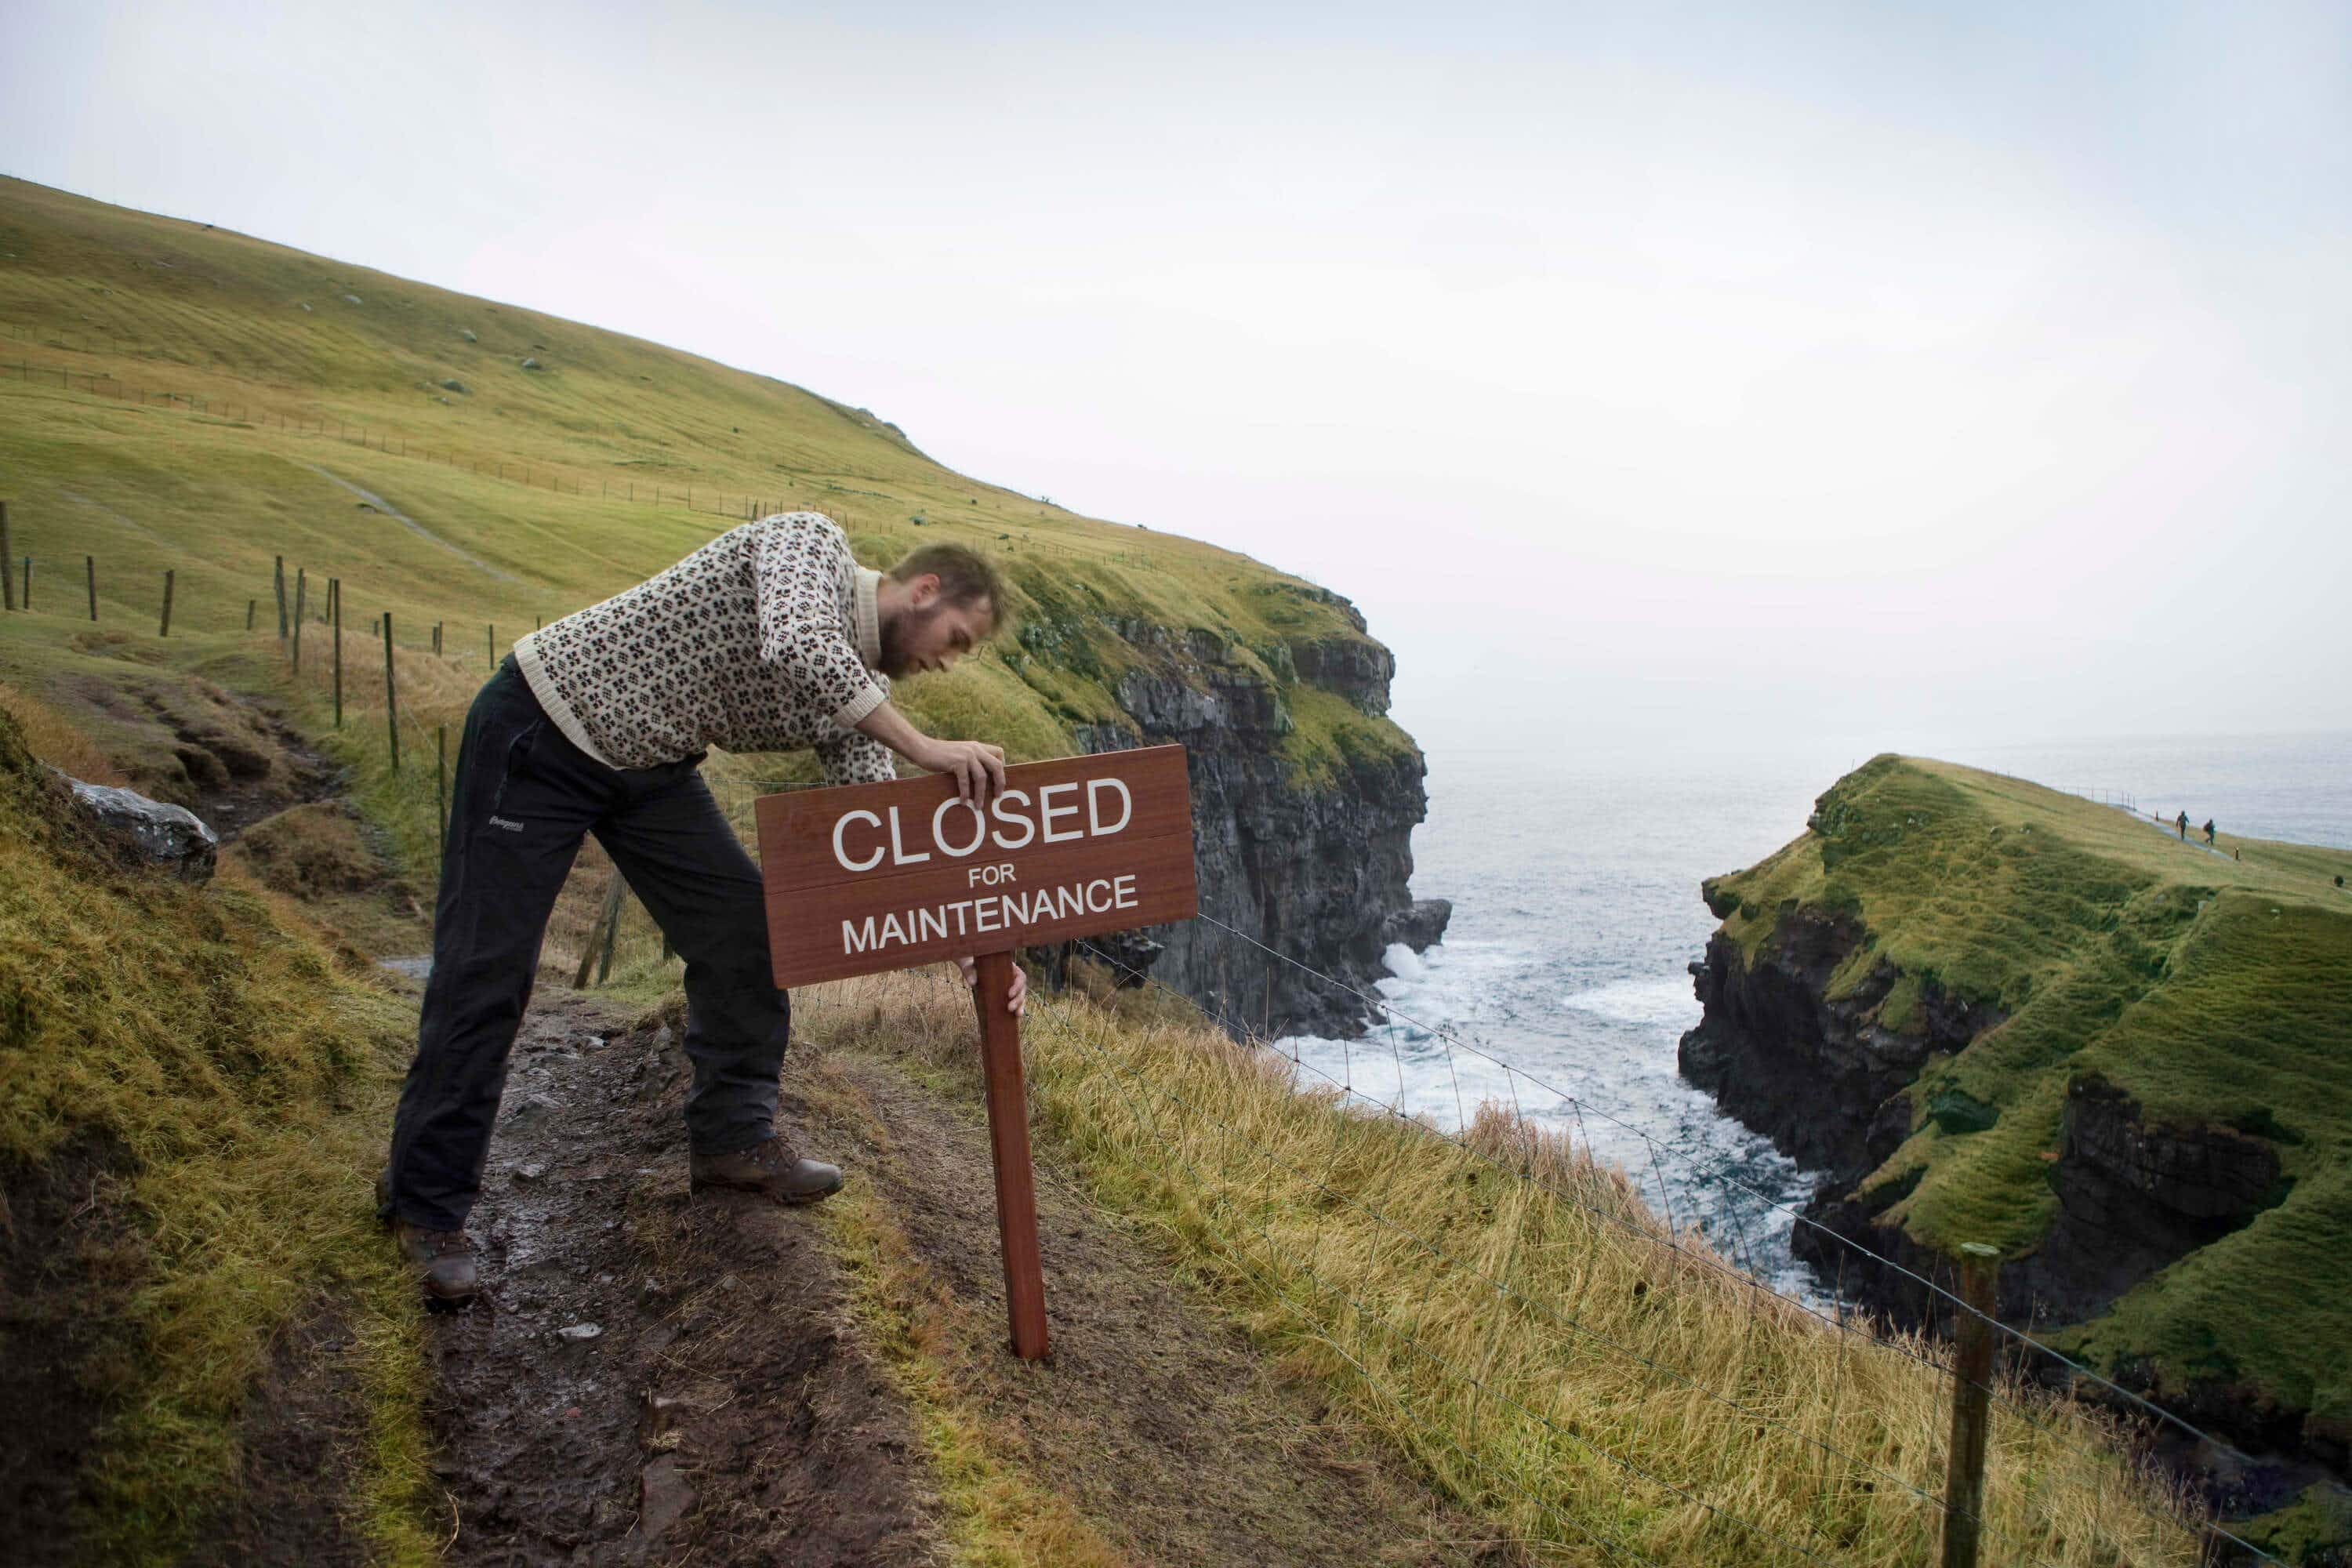 The Faroe Islands will temporarily close to tourists